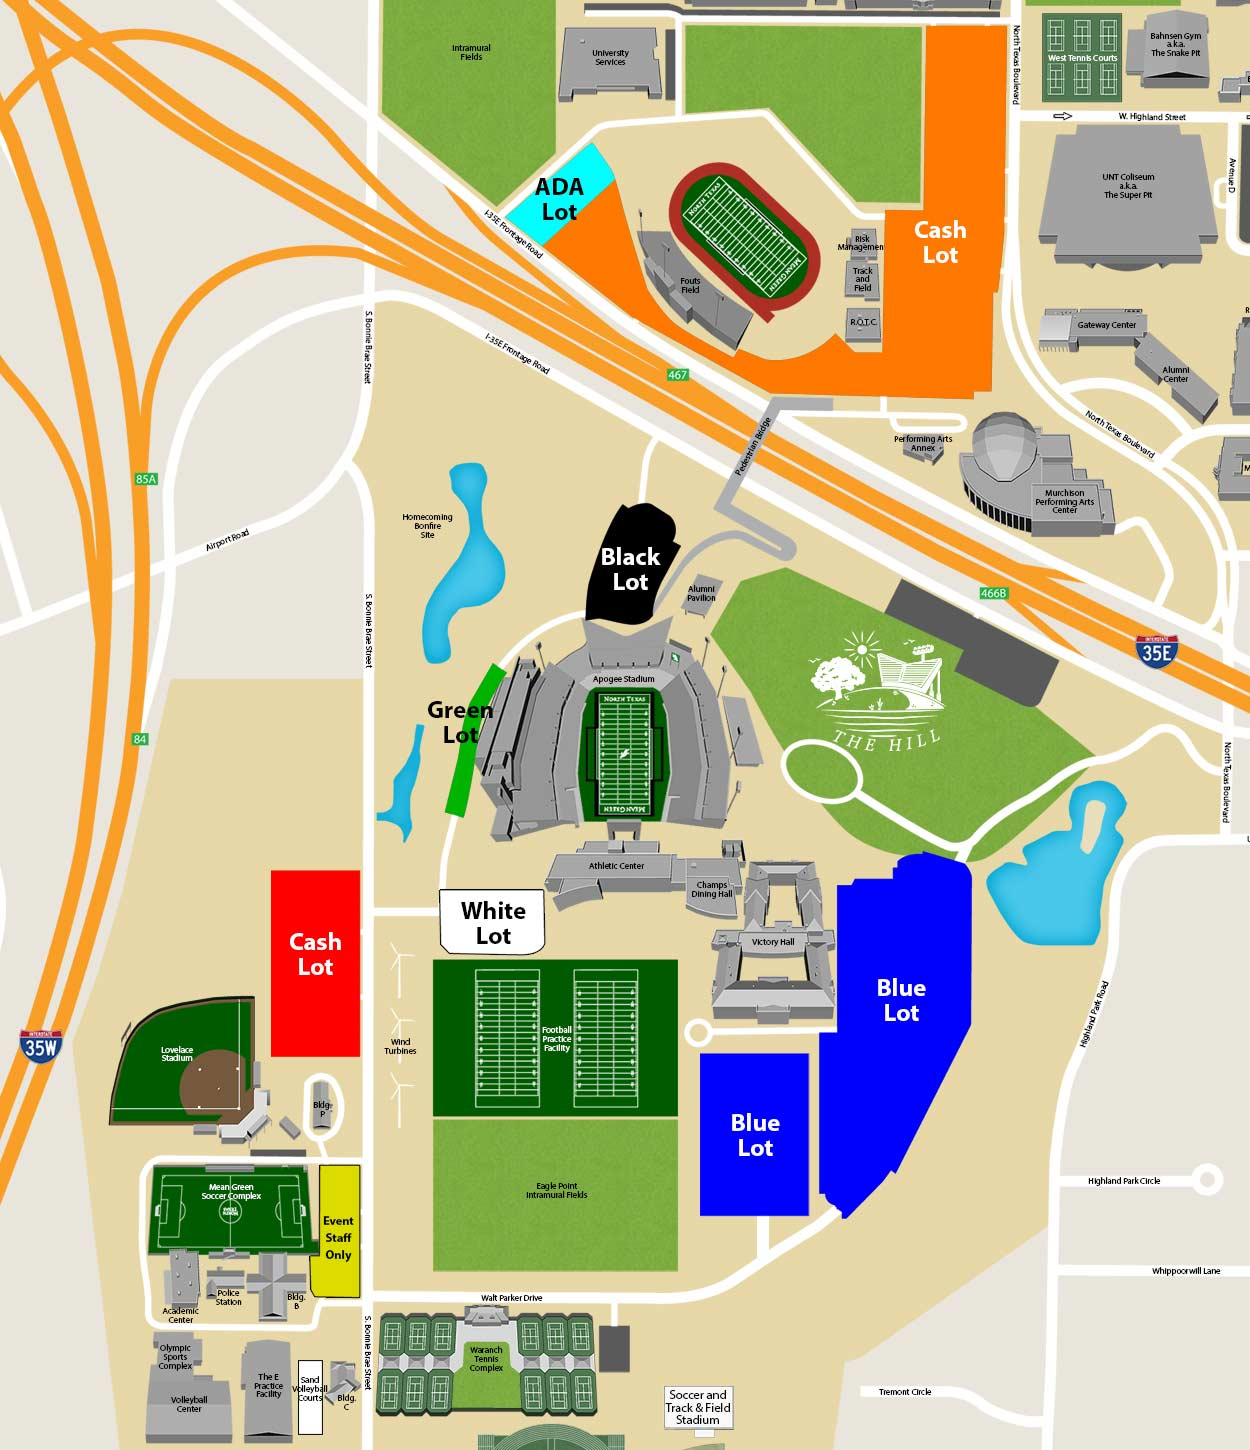 Apogee Stadium parking